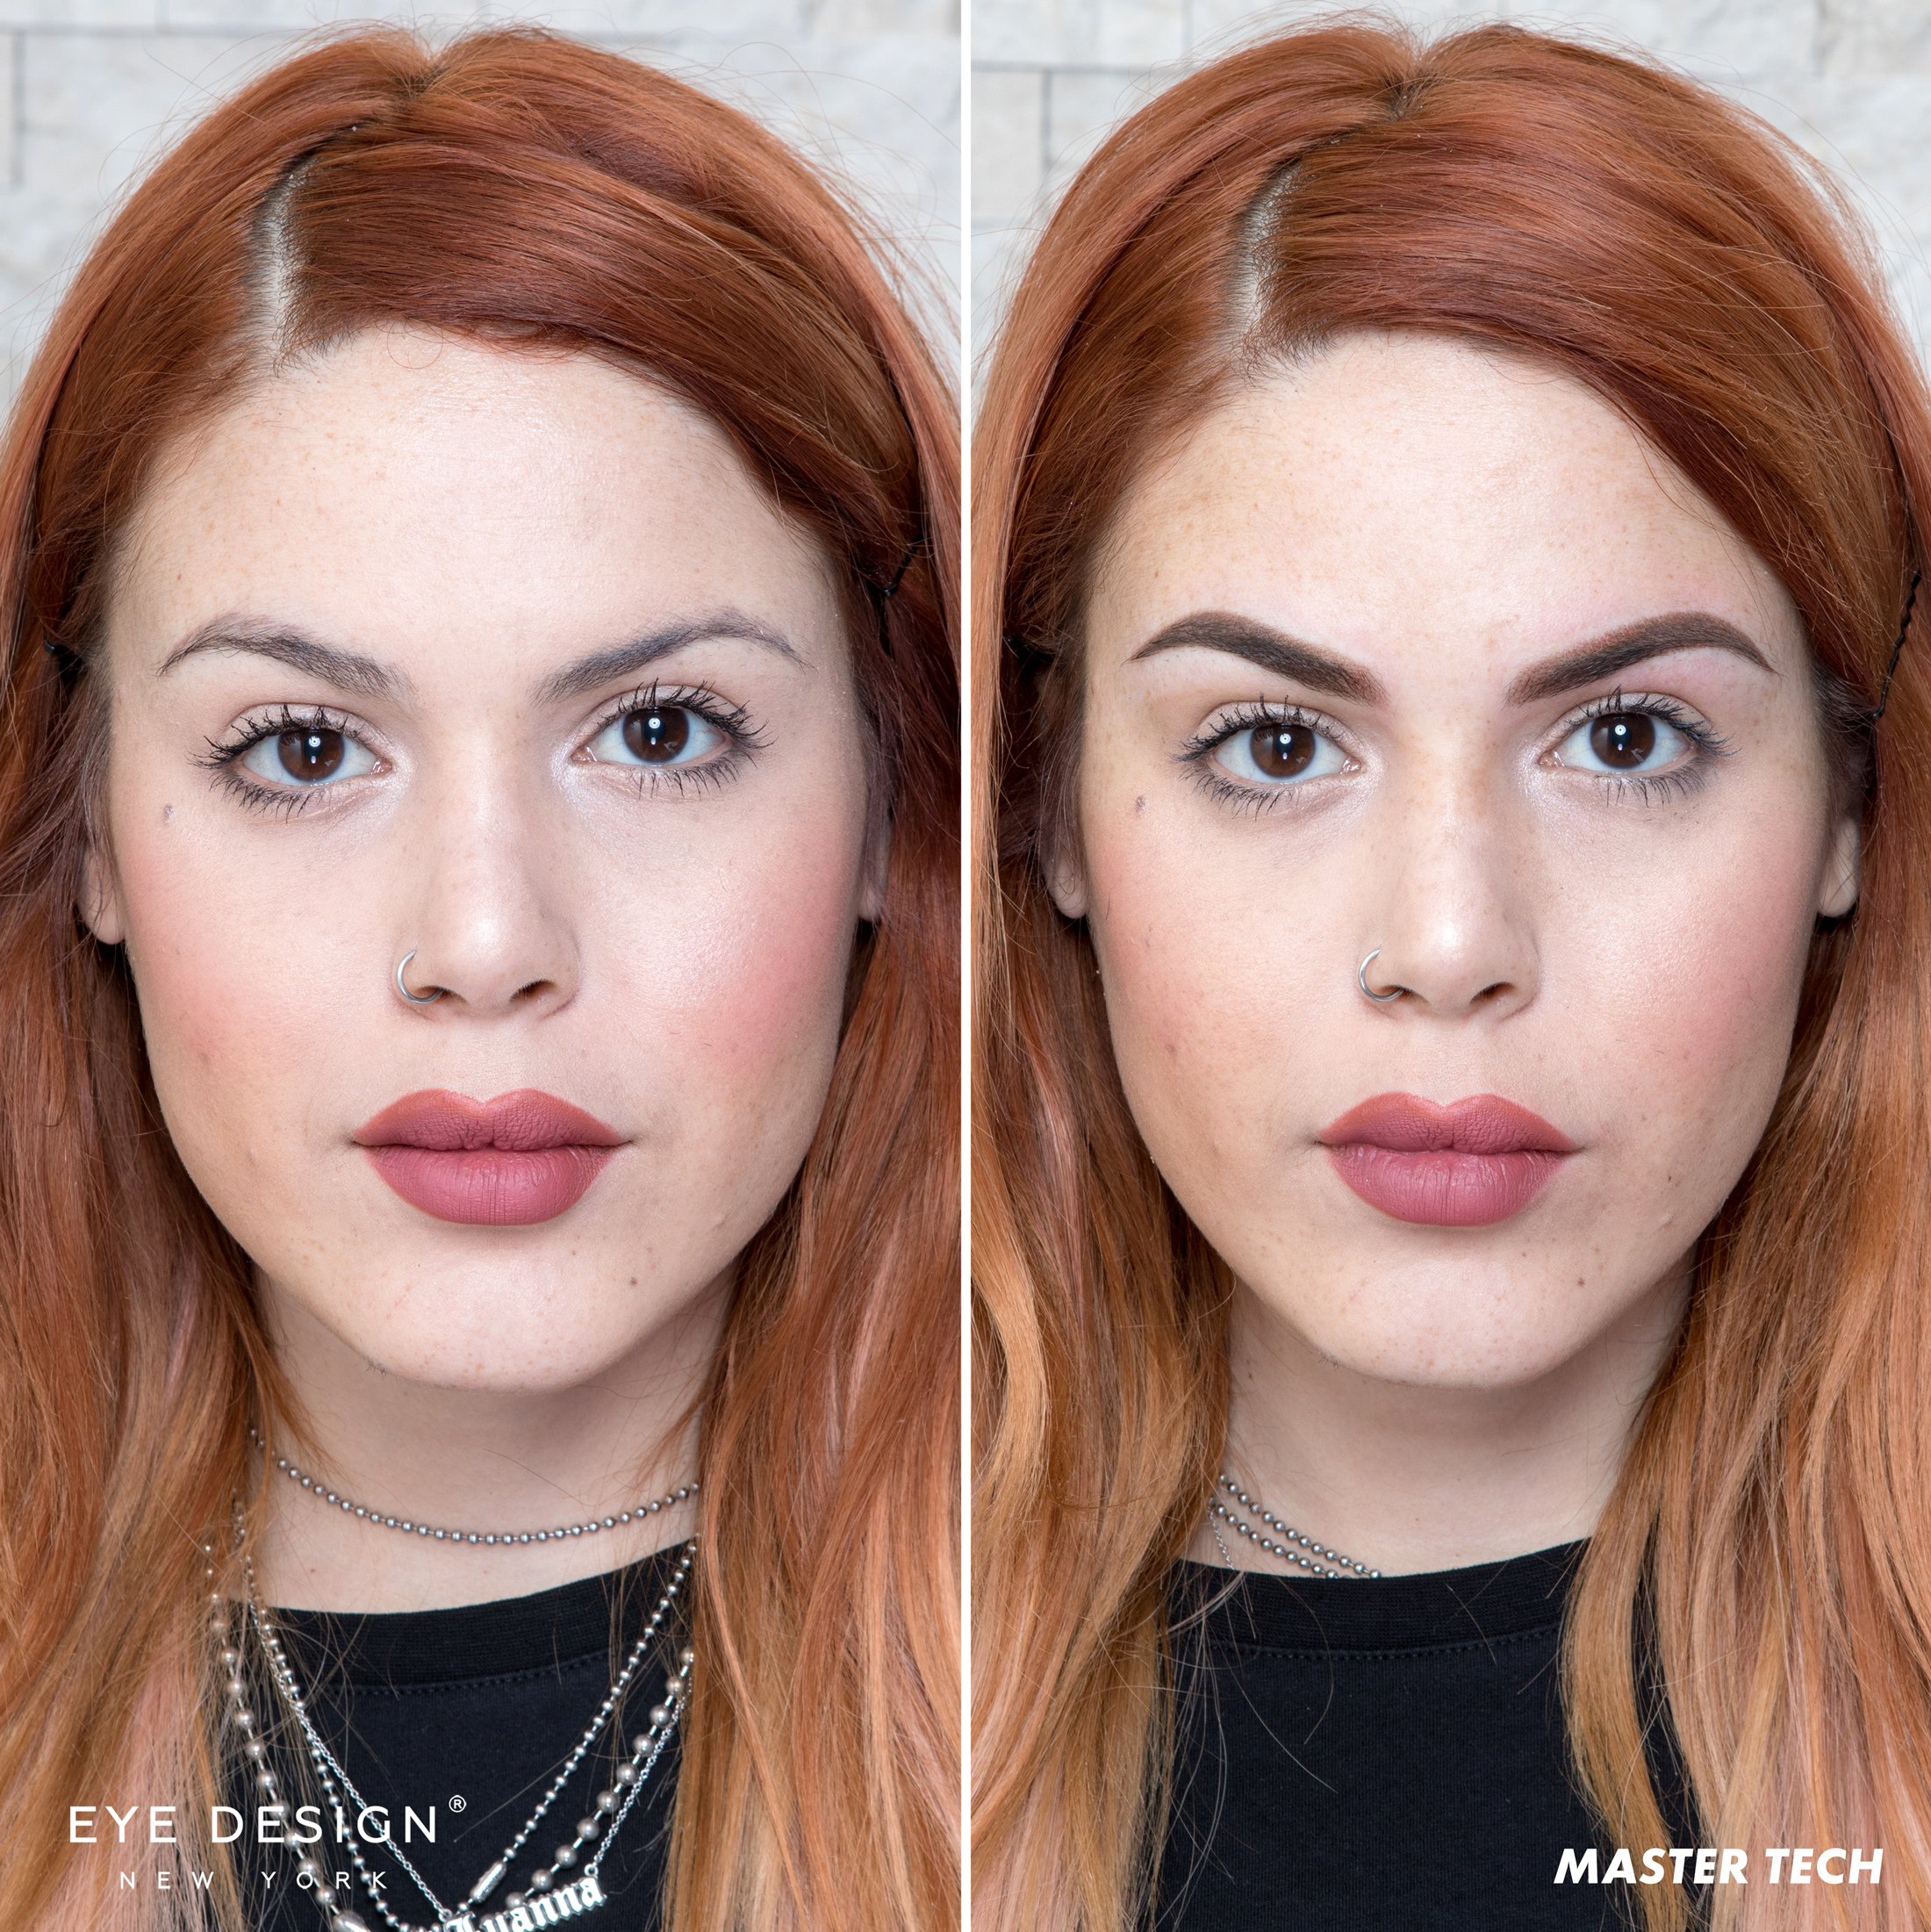 10 reasons to consider Powder Effect (brow shading)